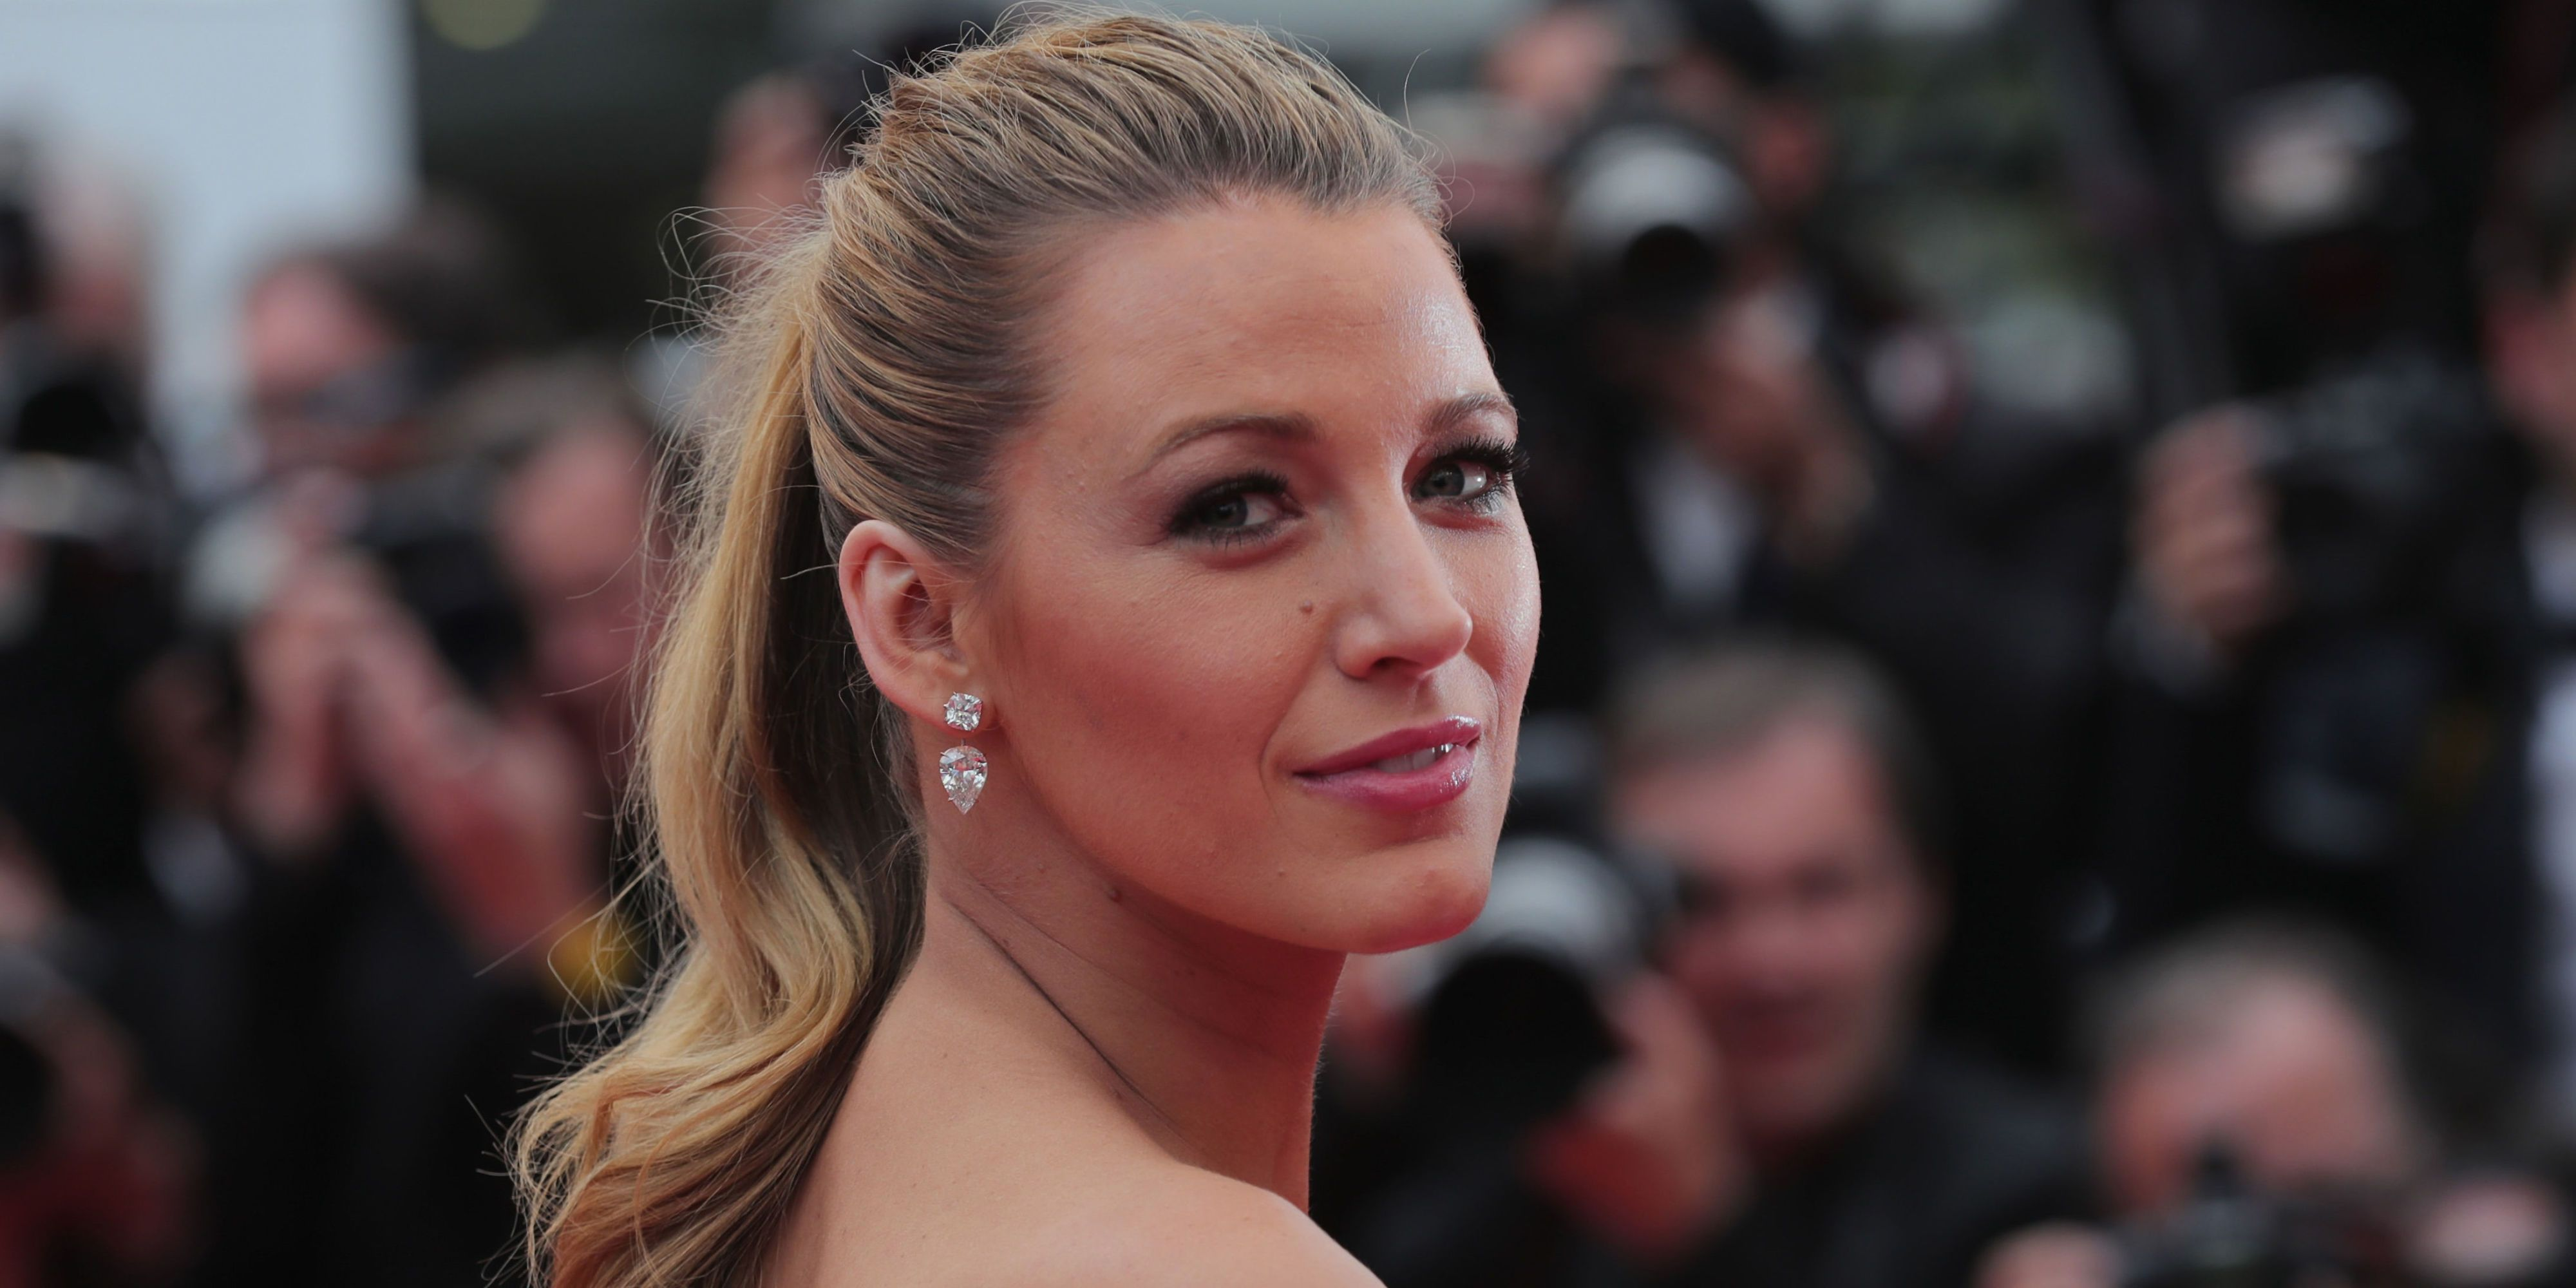 Pixie Cut News Blake Lively Has A Pixie Crop Hair Transformation In Her